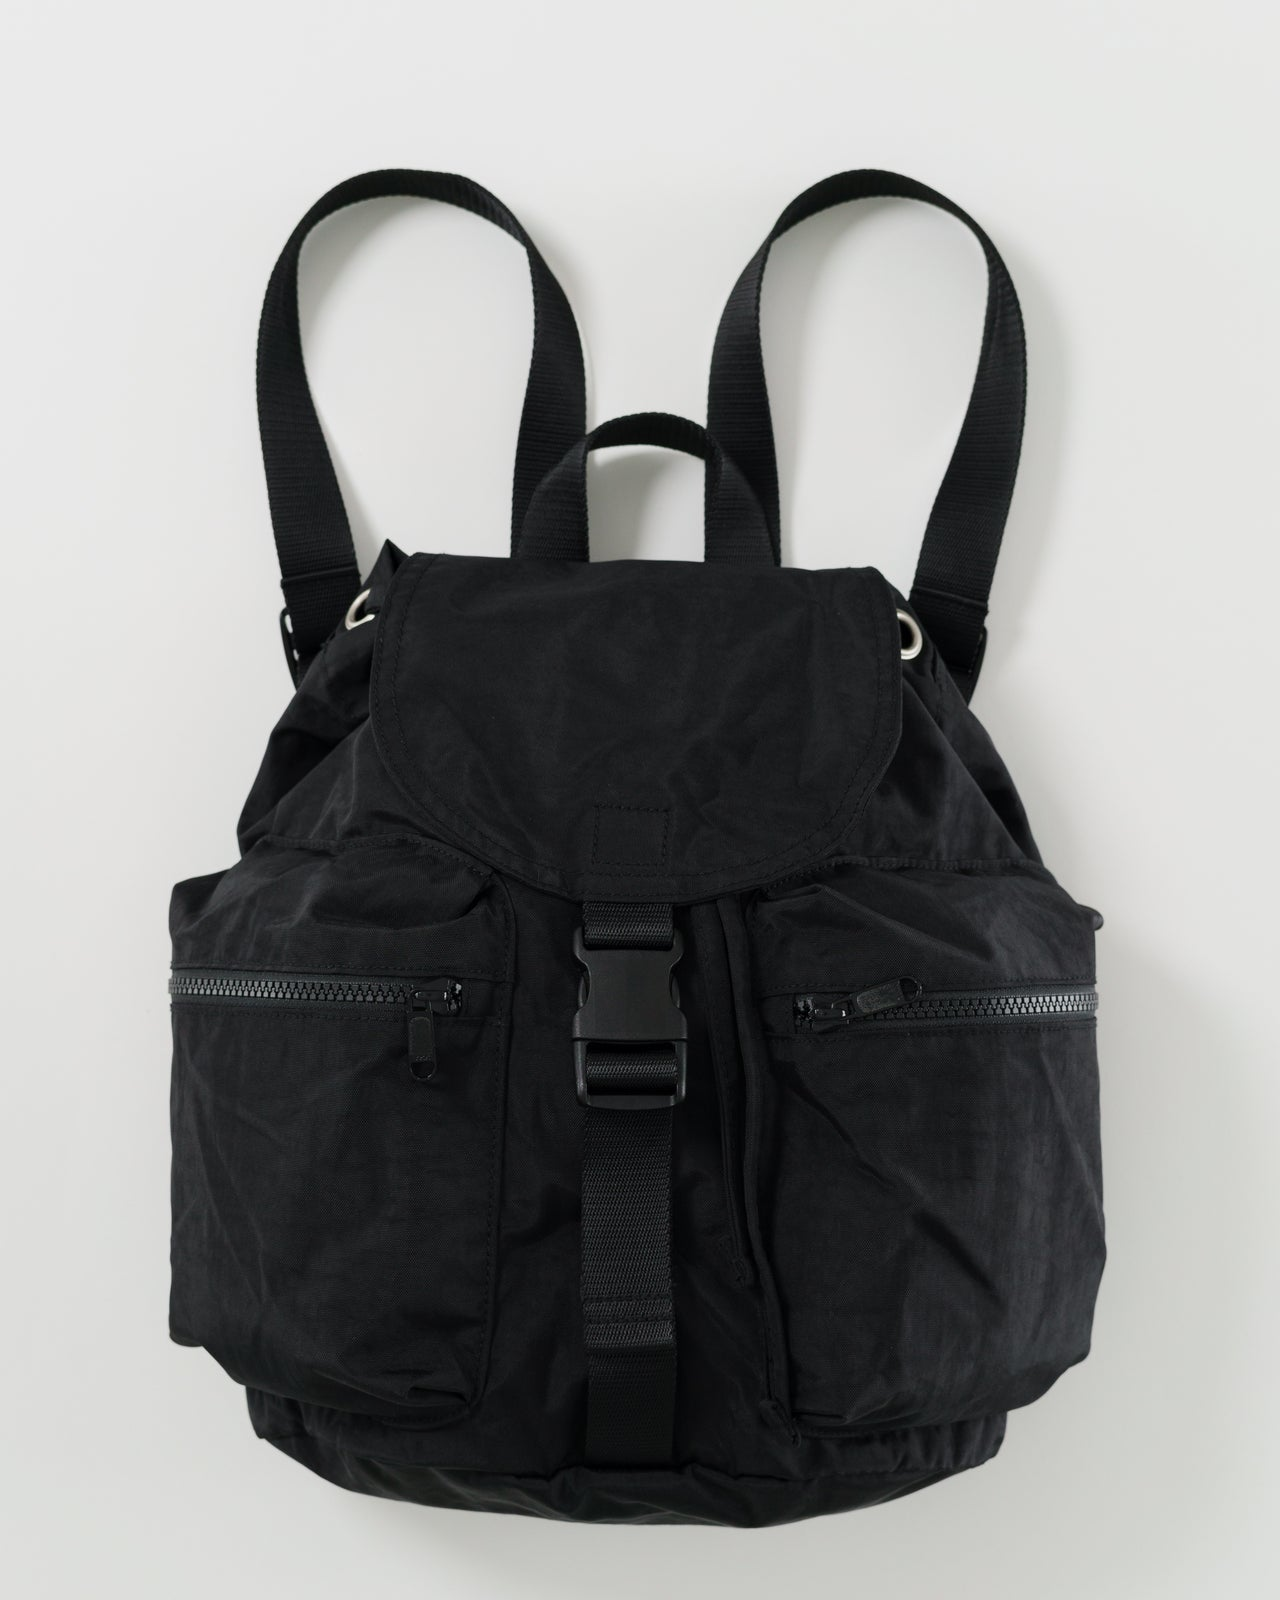 Small Sport Backpack - Solid Black